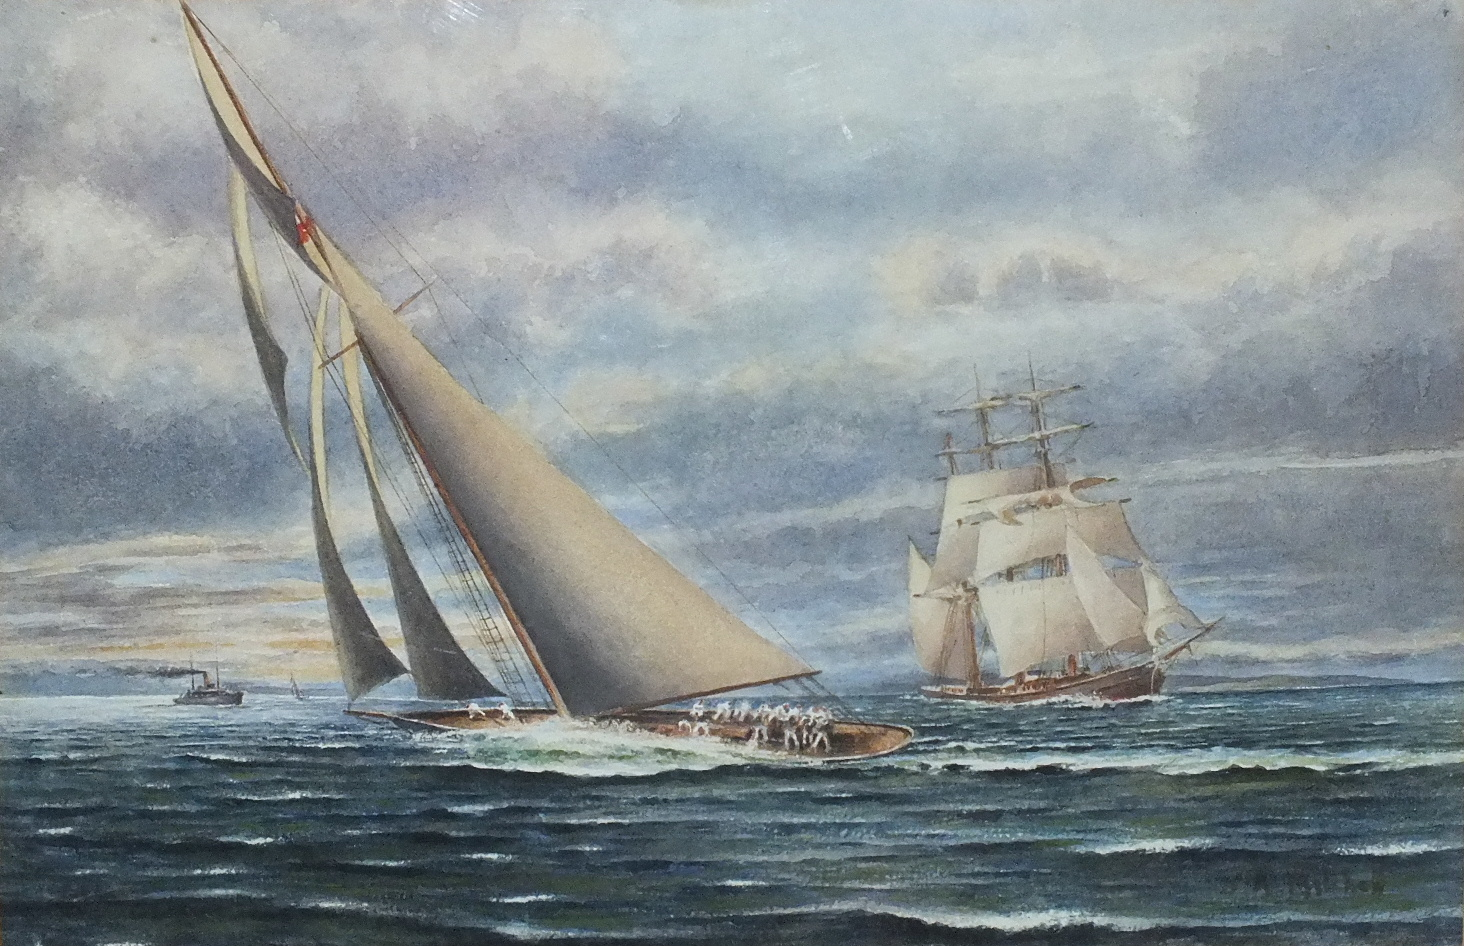 Lot 79 - J A Mitchell? LIPTON'S YACHT SHAMROCK ON THE CLYDE Signed watercolour, inscribed on label